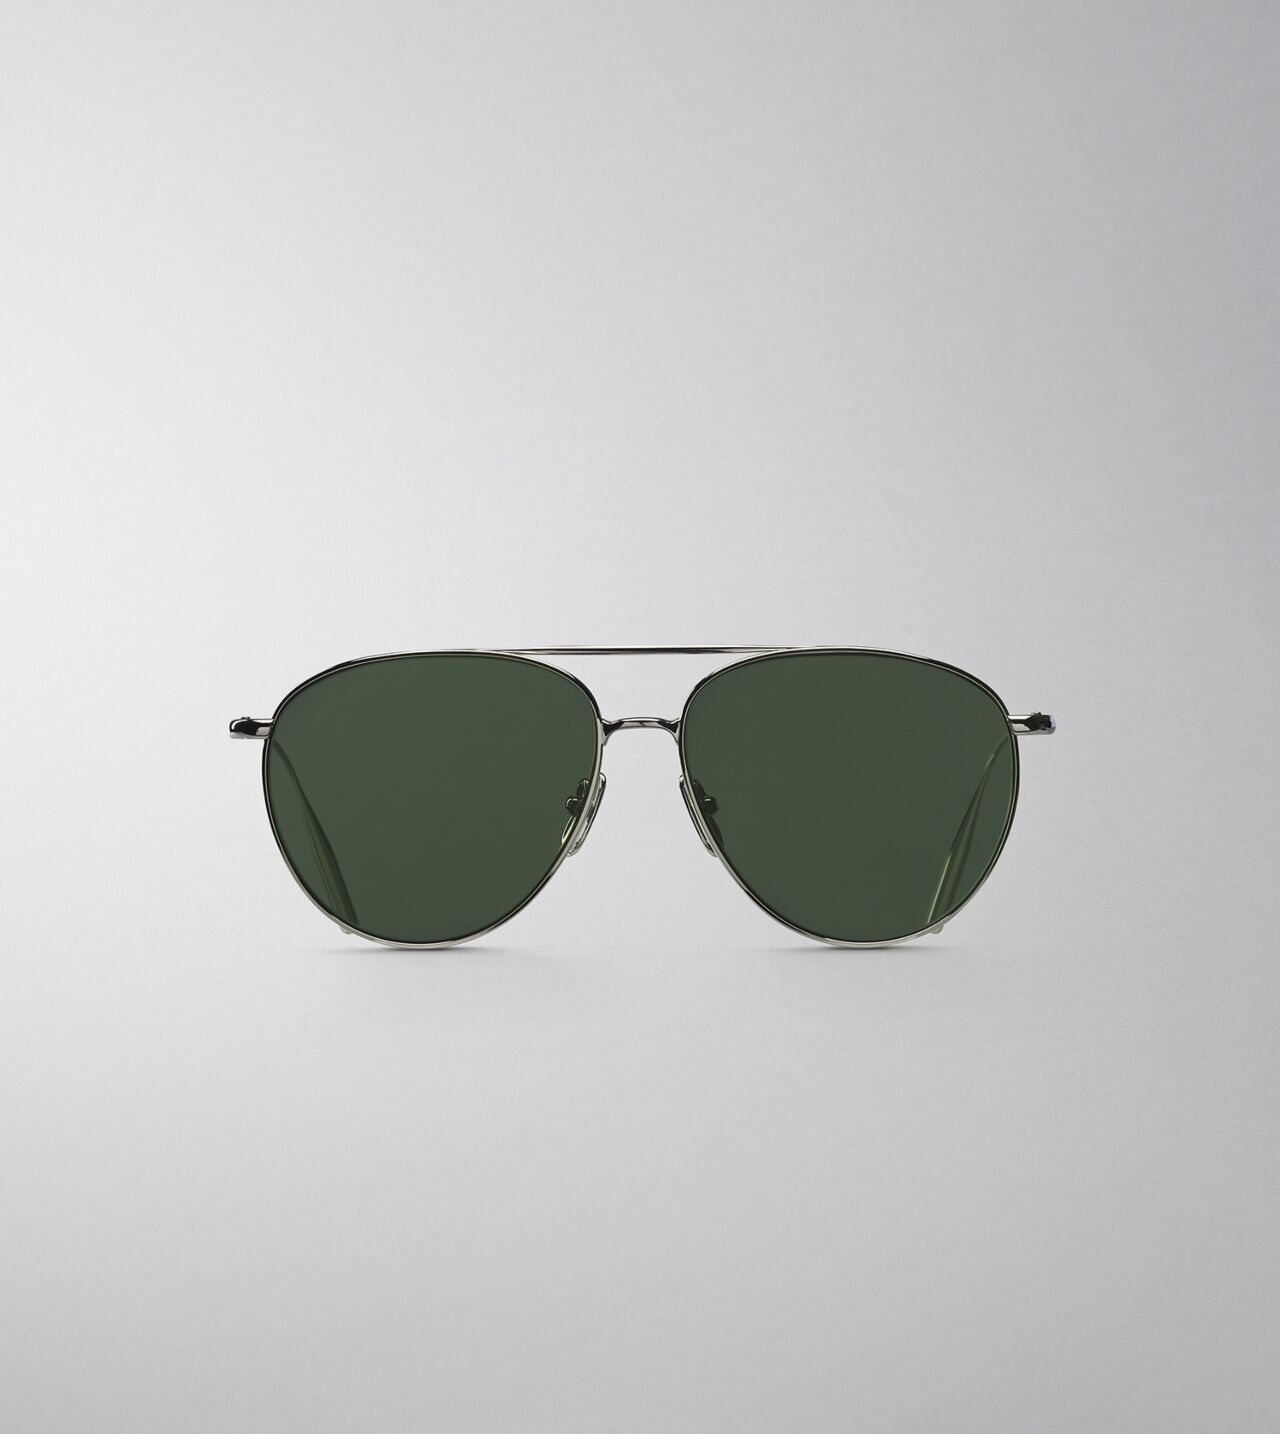 Picture of Byredo The Certified Pilot in Palladium green